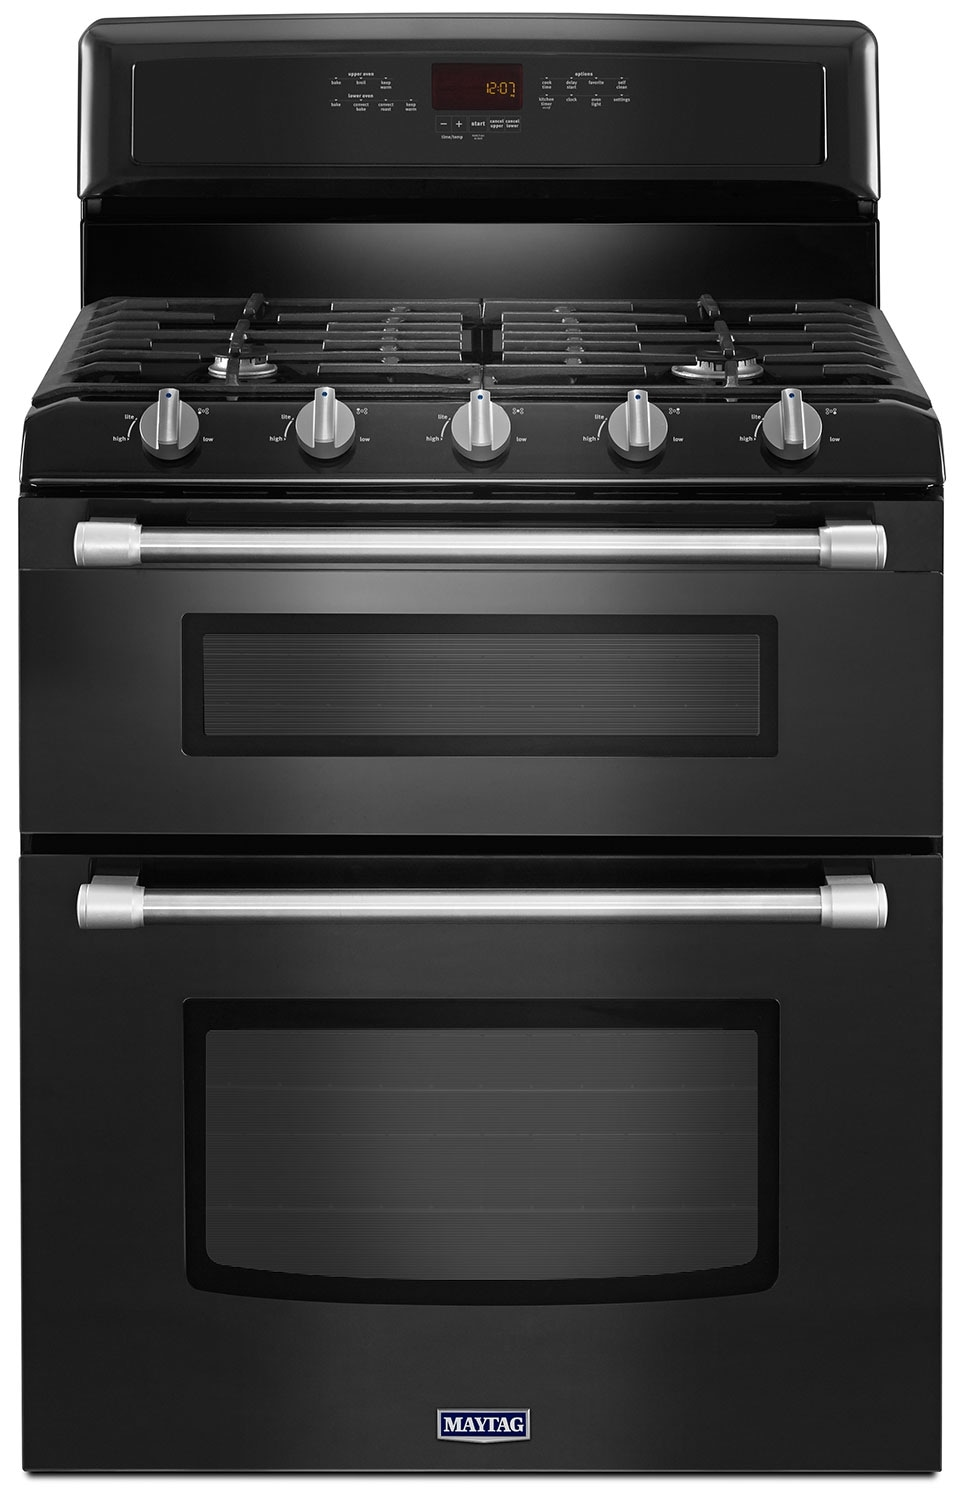 Cooking Products - Maytag Black Freestanding Double Gas Range (6.0 Cu. Ft.) - MGT8720DE